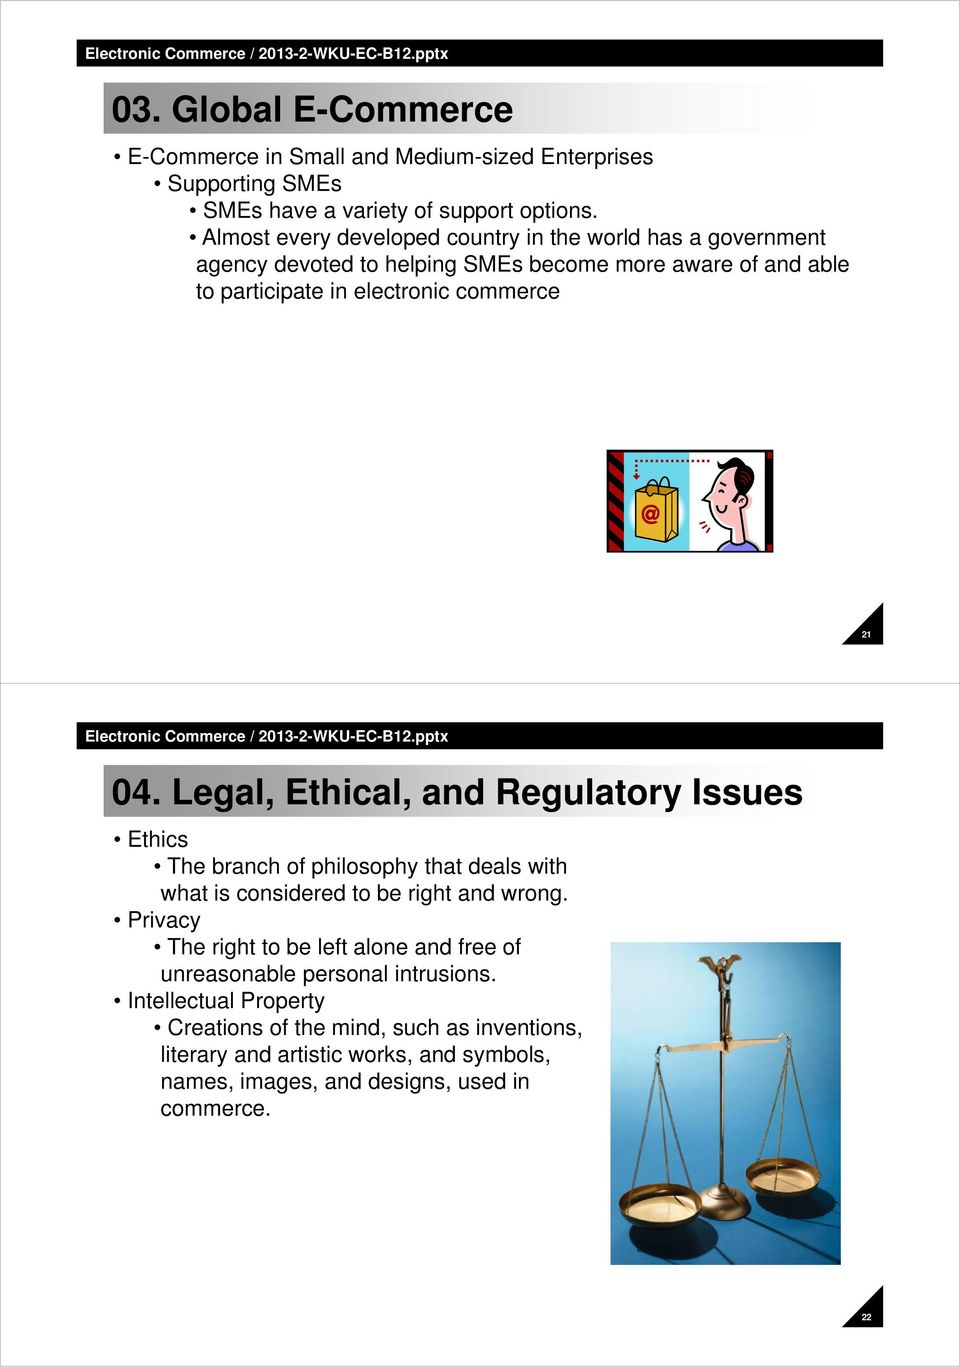 04. Legal, Ethical, and Regulatory Issues Ethics The branch of philosophy that deals with what is considered to be right and wrong.